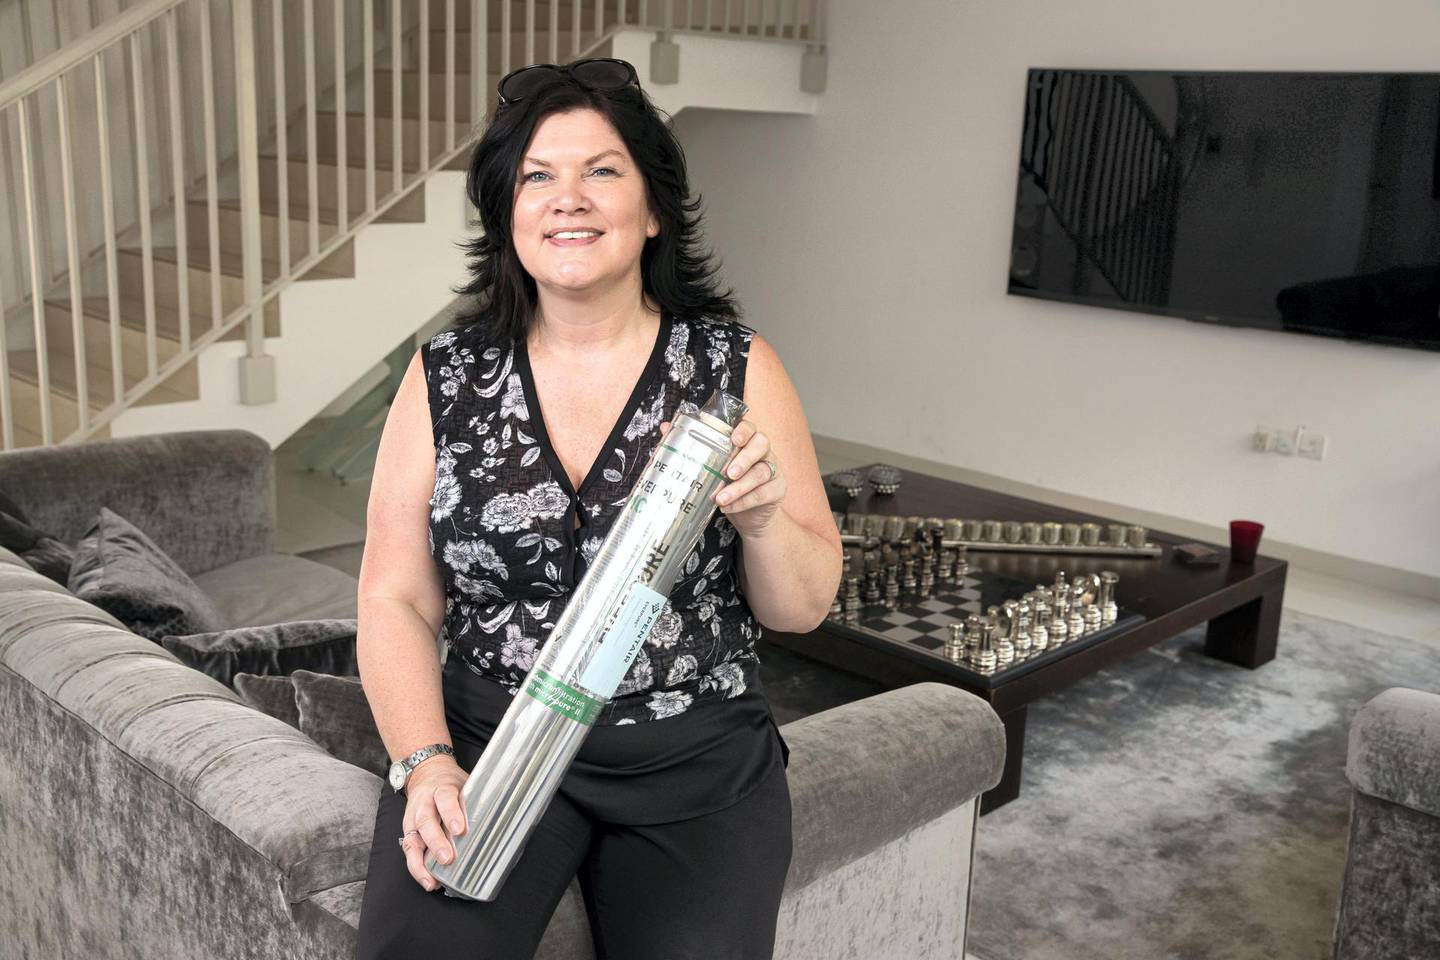 DUBAI, UNITED ARAB EMIRATES. 18 SEPTEMBER 2019. Carole Fraser, director No More Bottles, which provides filtration devices to provide drinking water from mainstream taps. (Photo: Antonie Robertson/The National) Journalist: David Dunn. Section: Business.